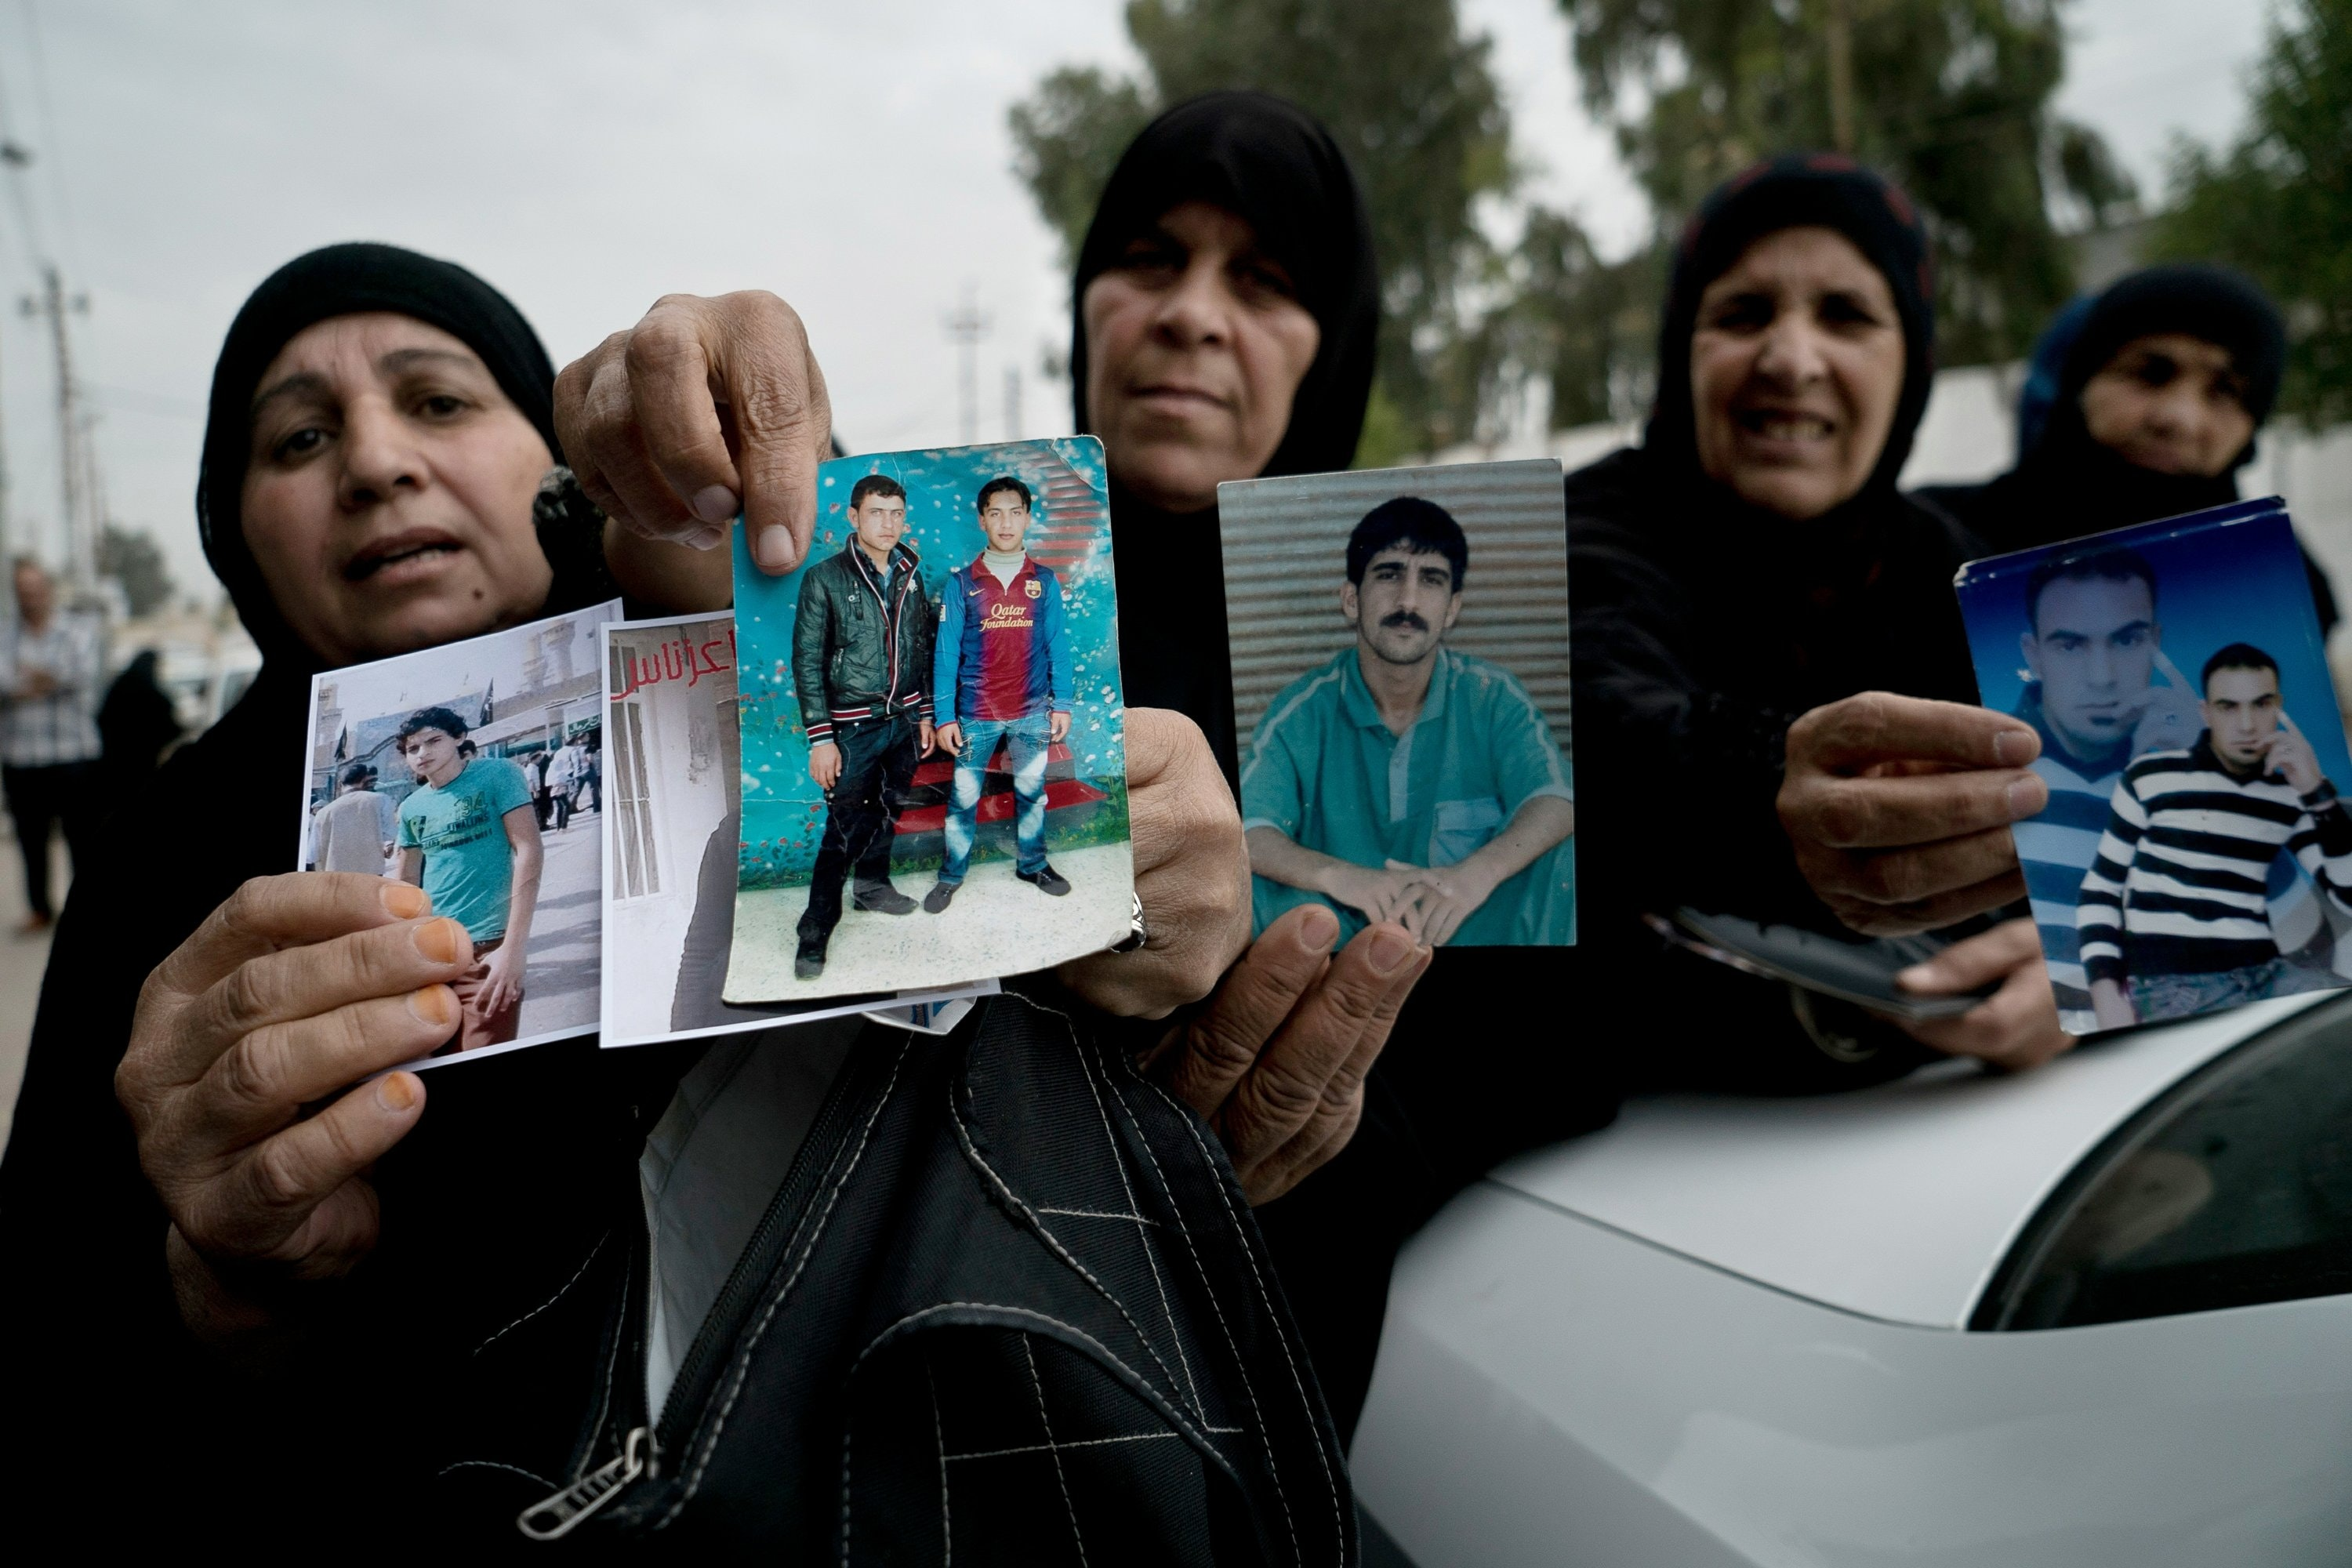 Iraq's brutal crackdown on suspected Islamic State supporters could trigger civil war